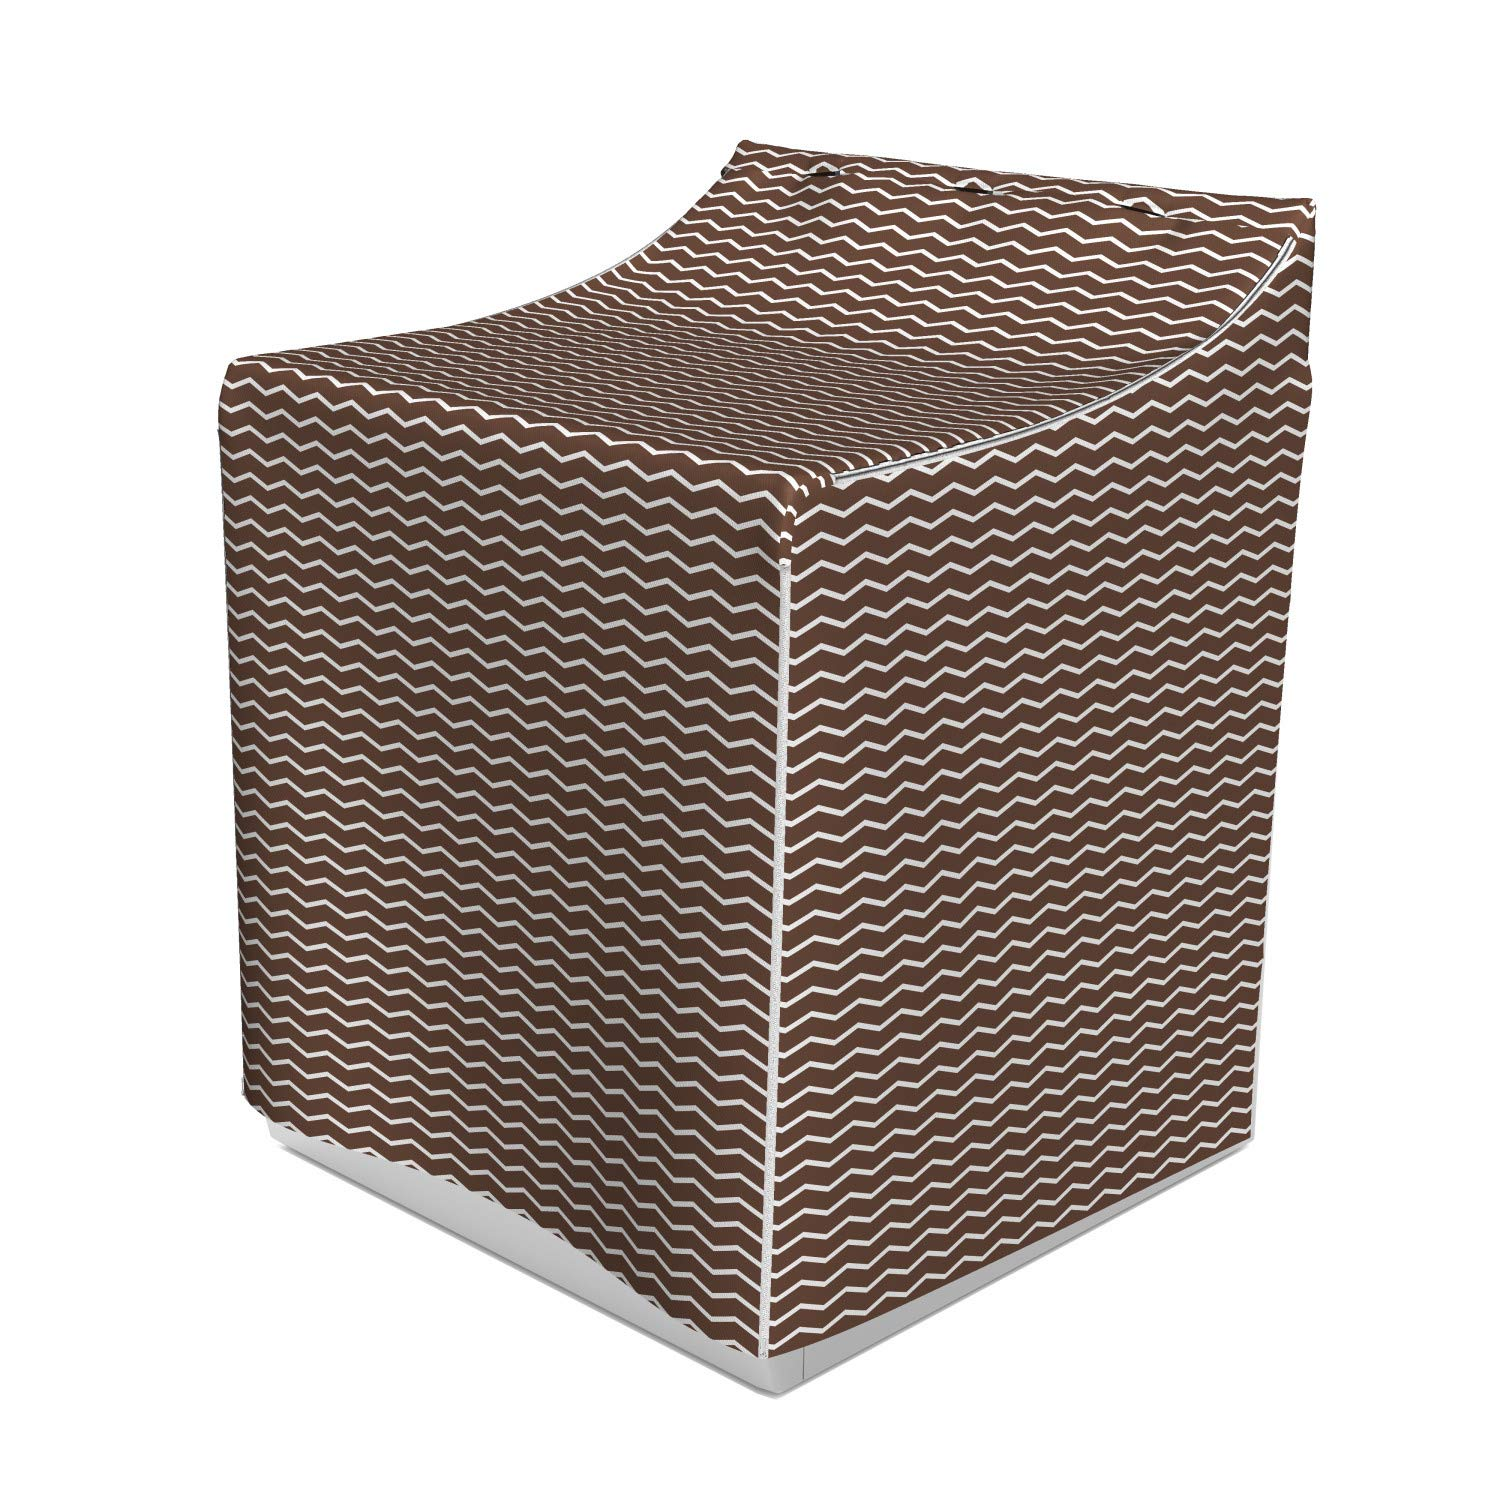 Lunarable Brown Washer Cover, Wave Like White Zig Zags Geometrical Retro Tribe Inspired Shaped Art Print, Suitable for Dryer and Washing Machine, 29'' x 28'' x 40'', Brown White by Lunarable